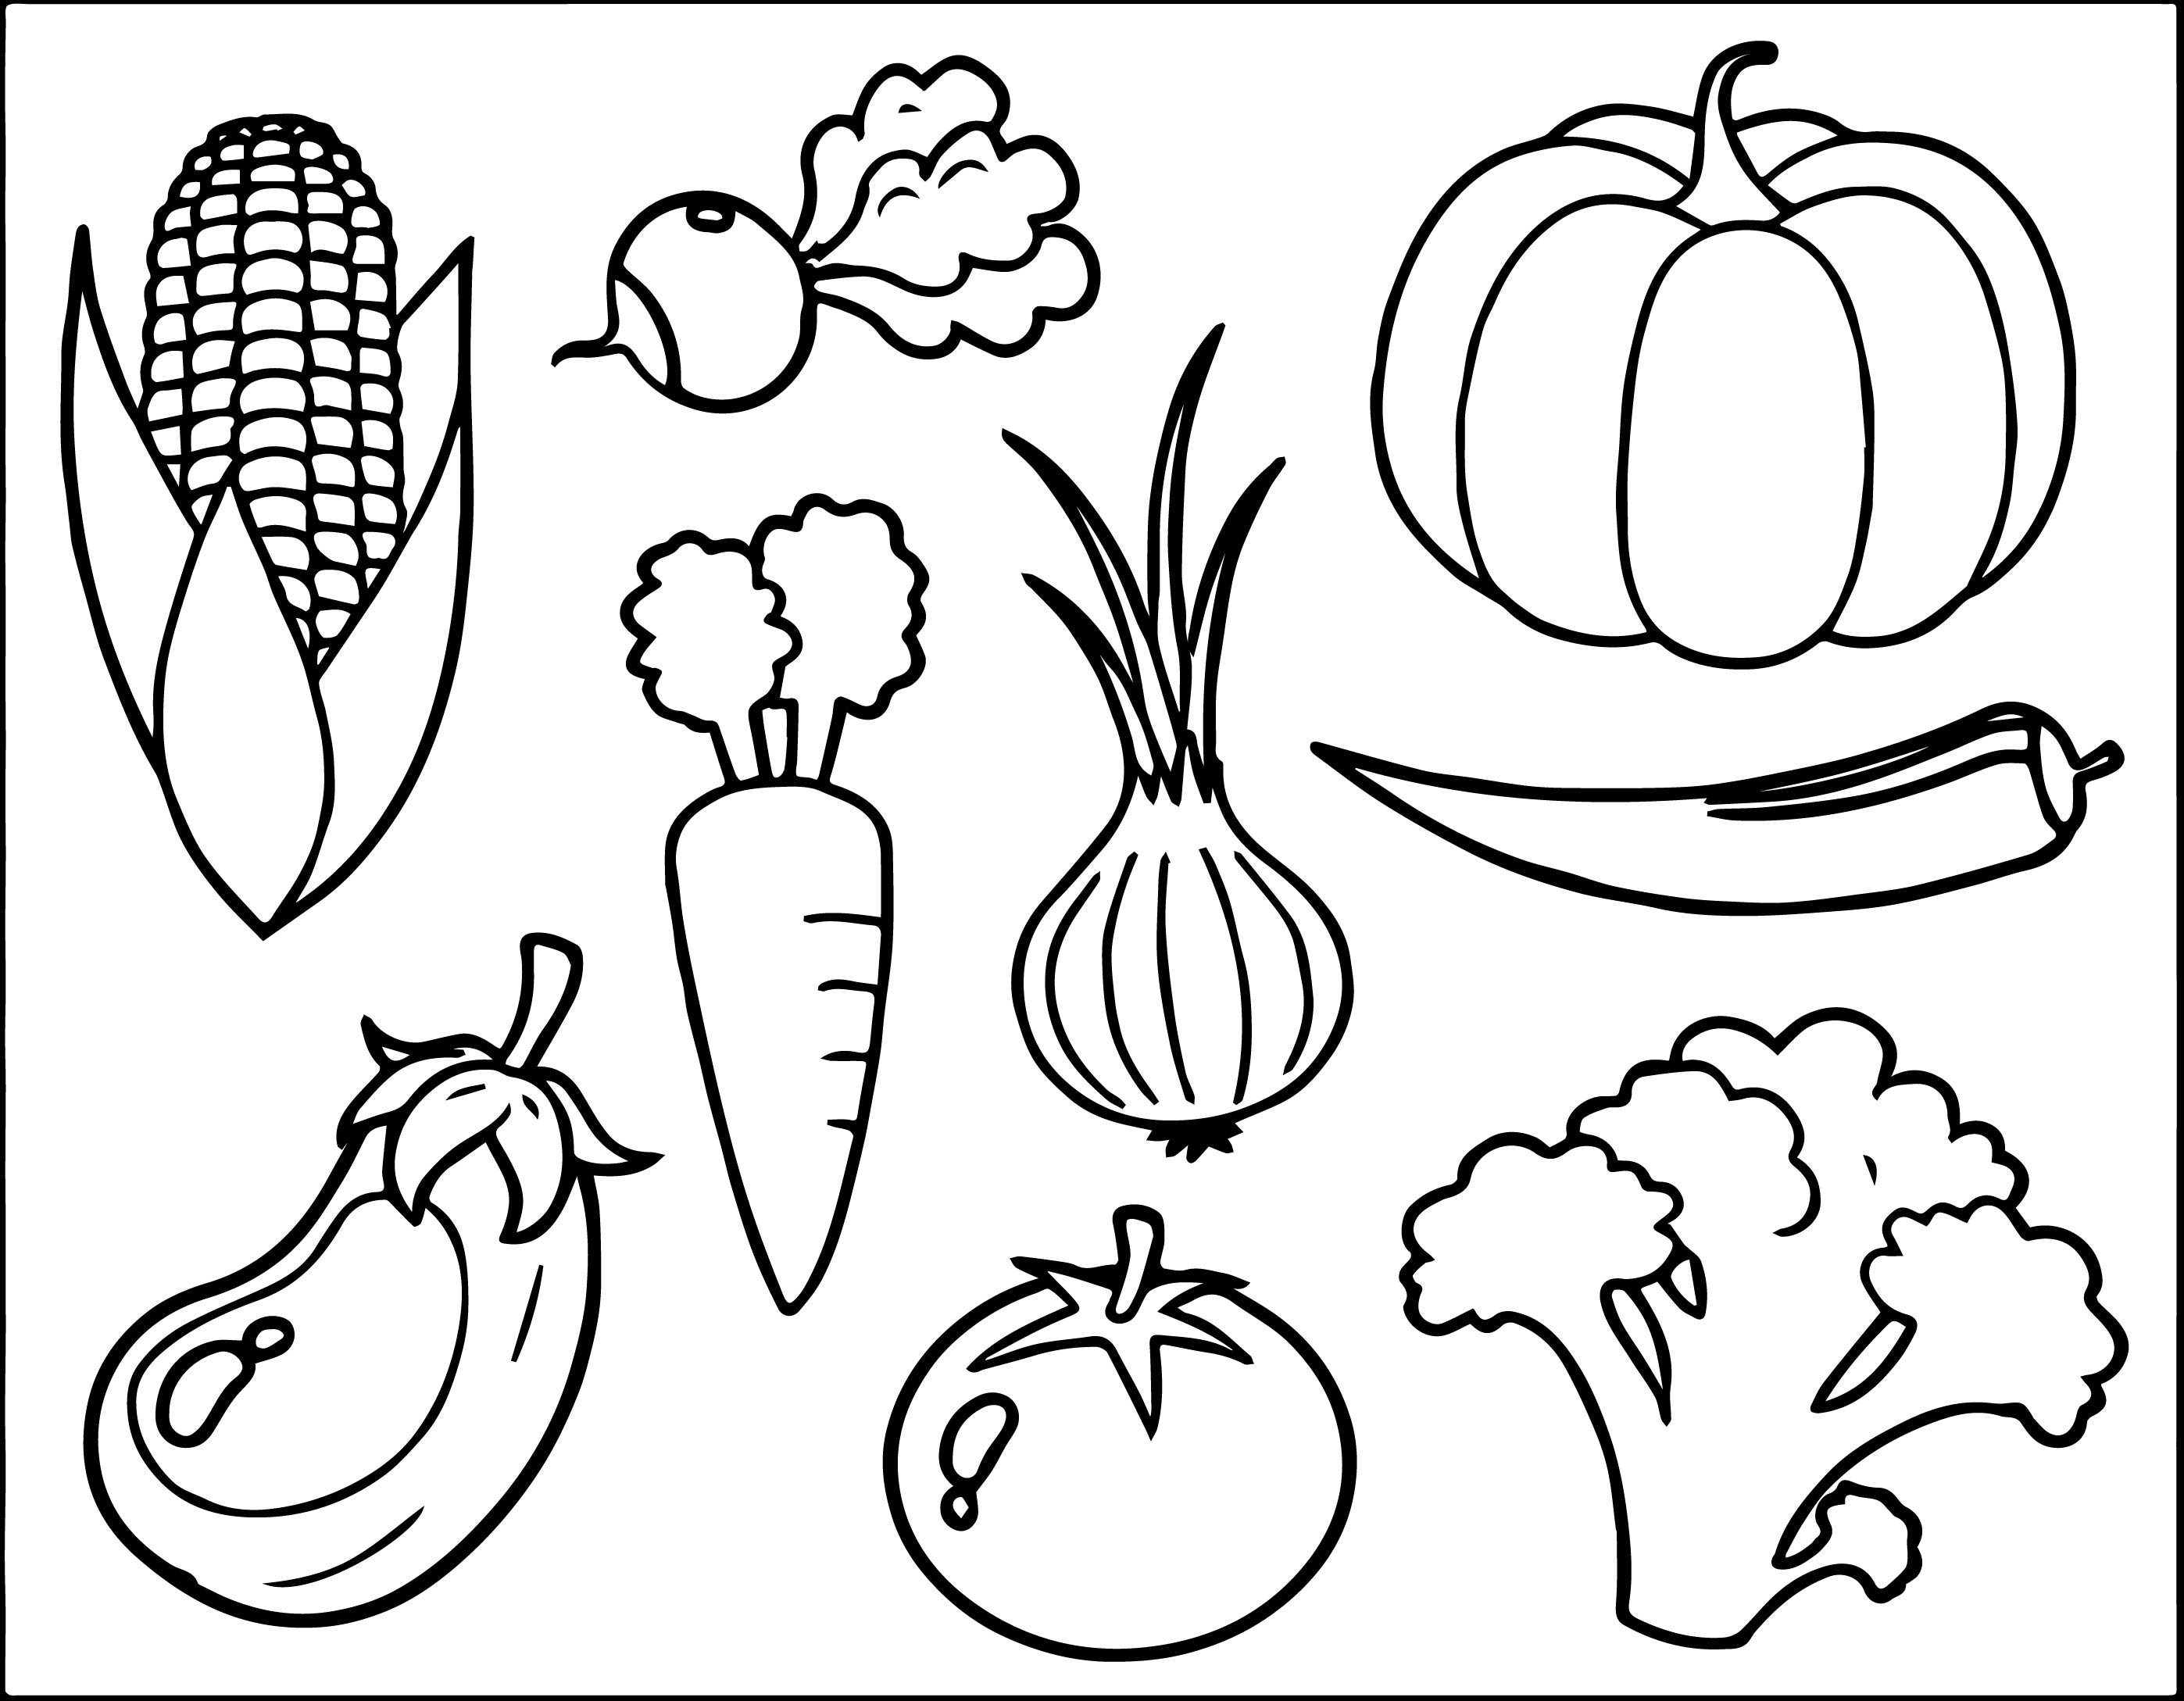 Colouring Pages For Adults Vegetables – Pusat Hobi